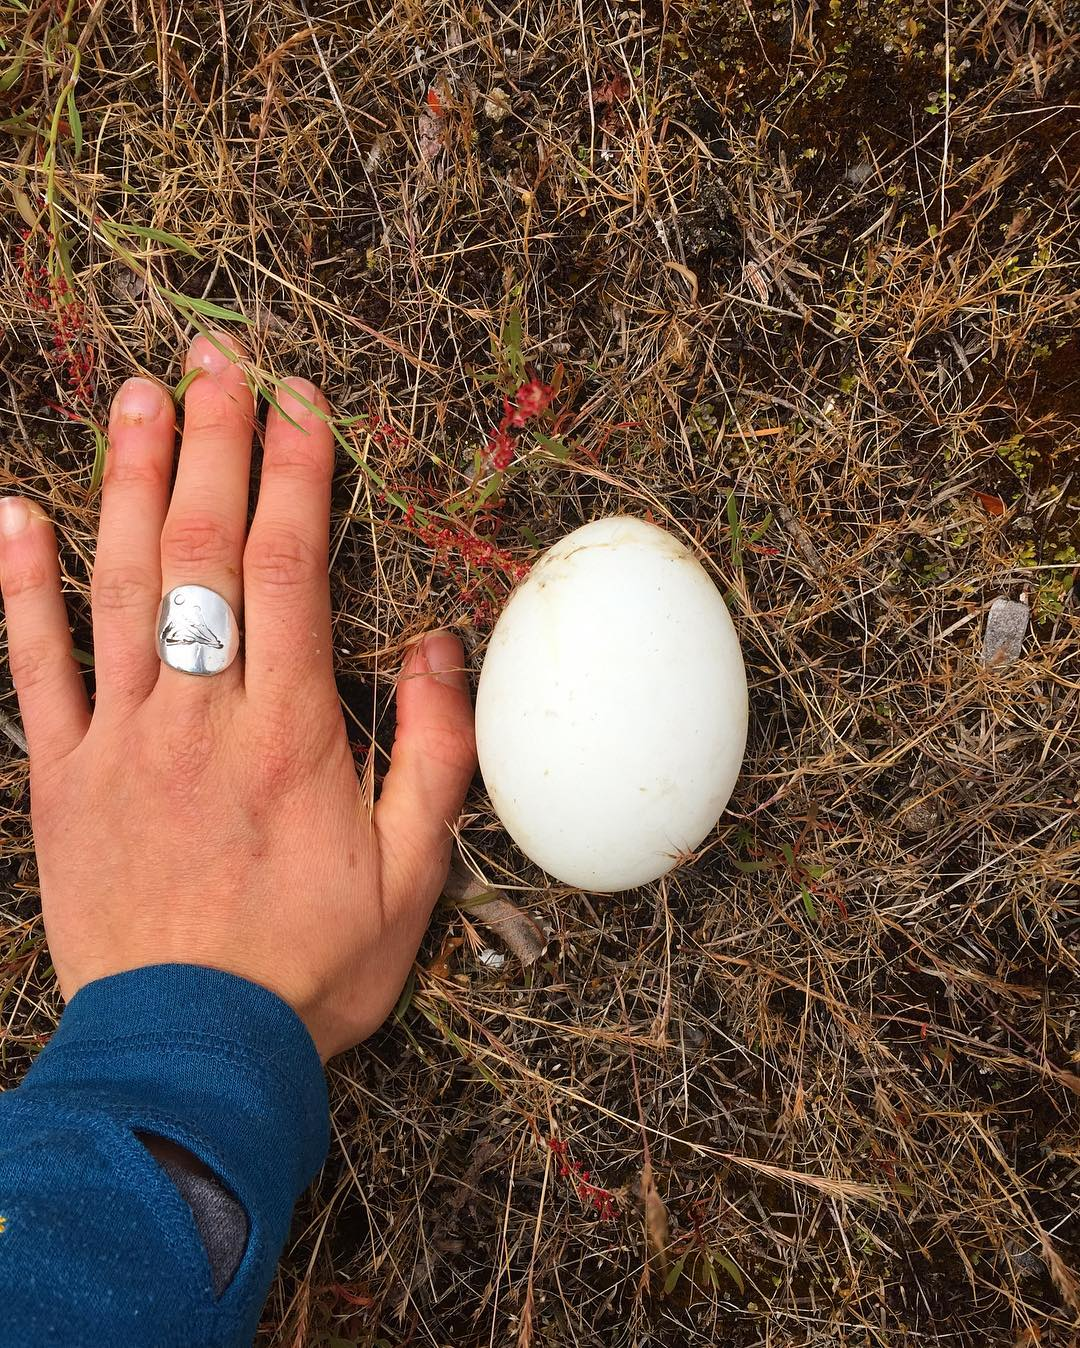 A palm wearing a ring and the wrist of a person clothed in blue rests on the brown ground besides a white egg half its size.